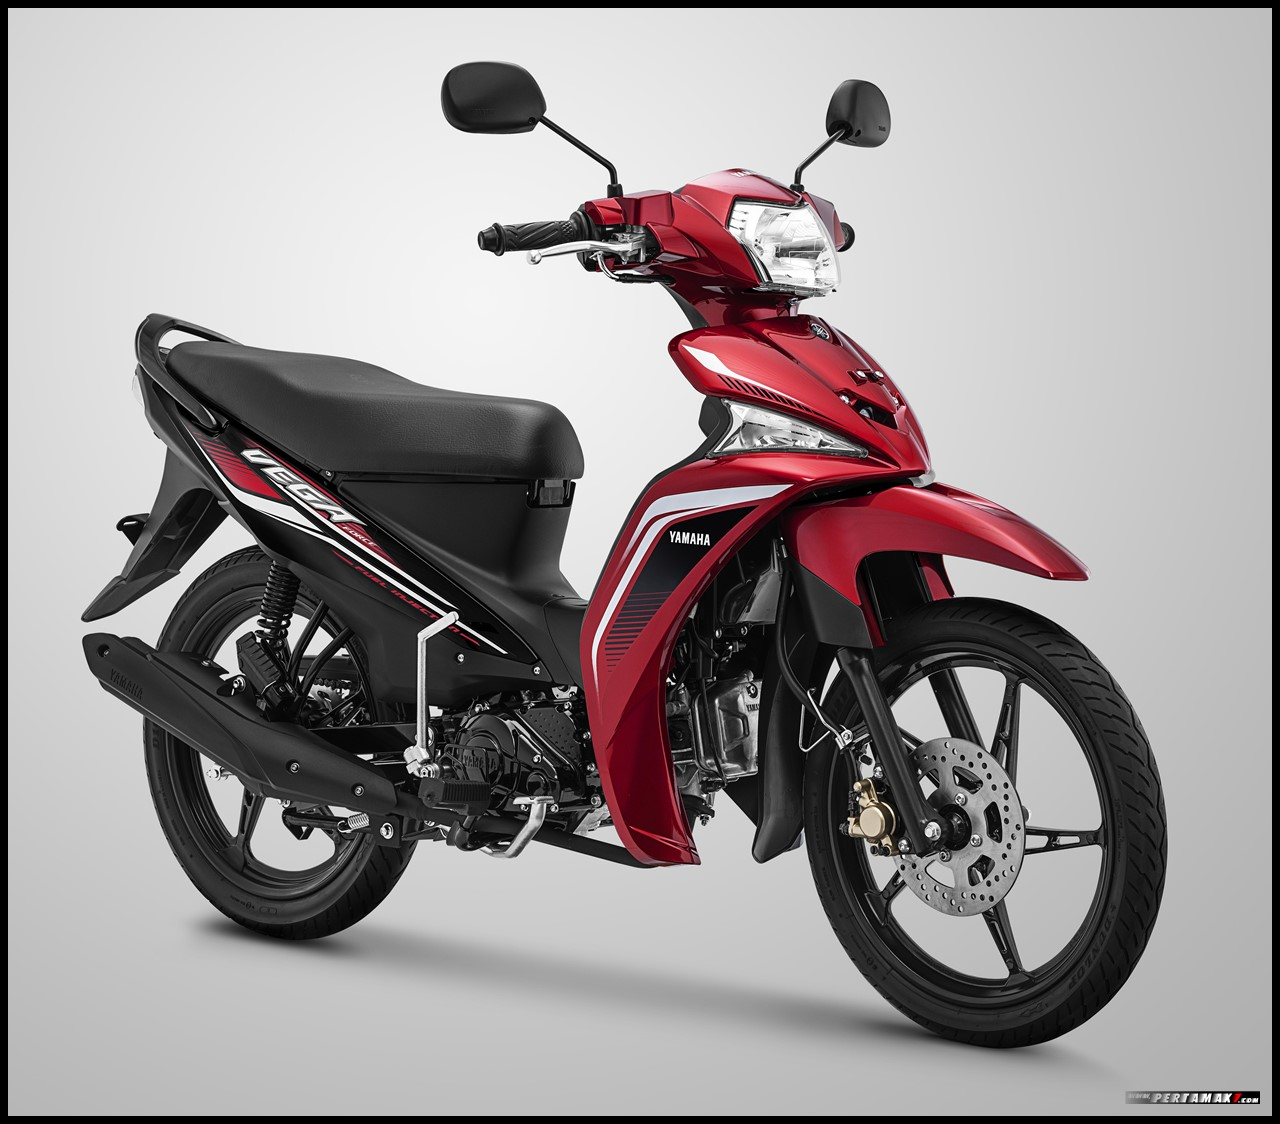 Vega Force Metallic Red merah Hitam